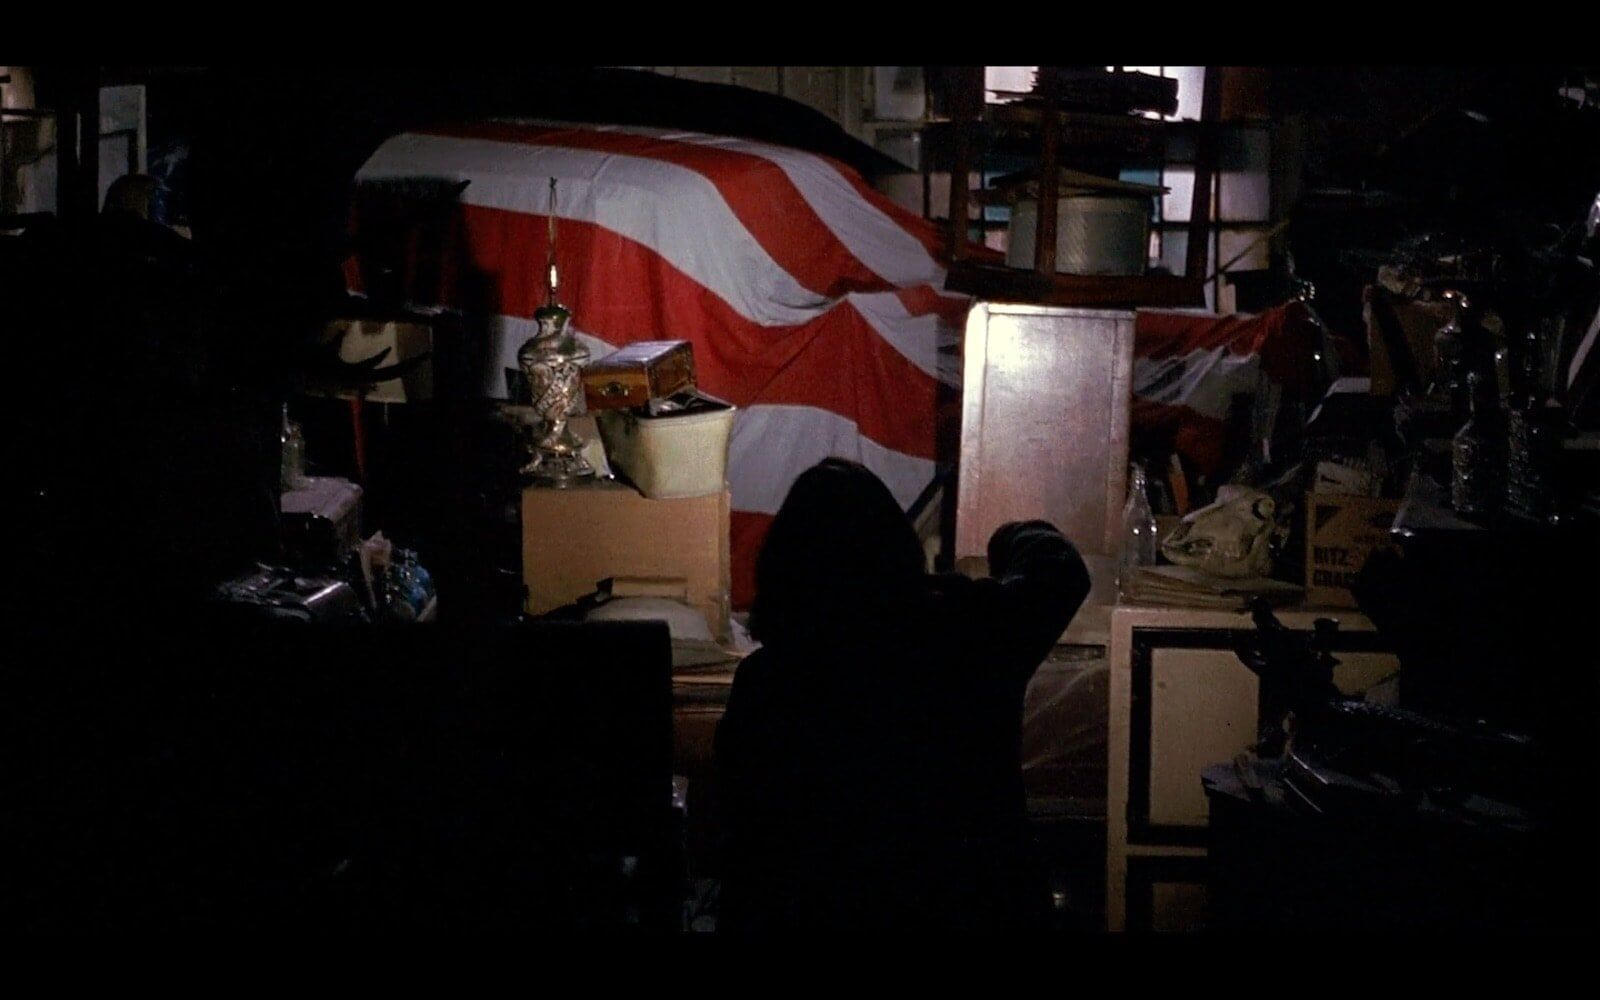 What is a Motif - Silence of the Lambs - Flag Over Car